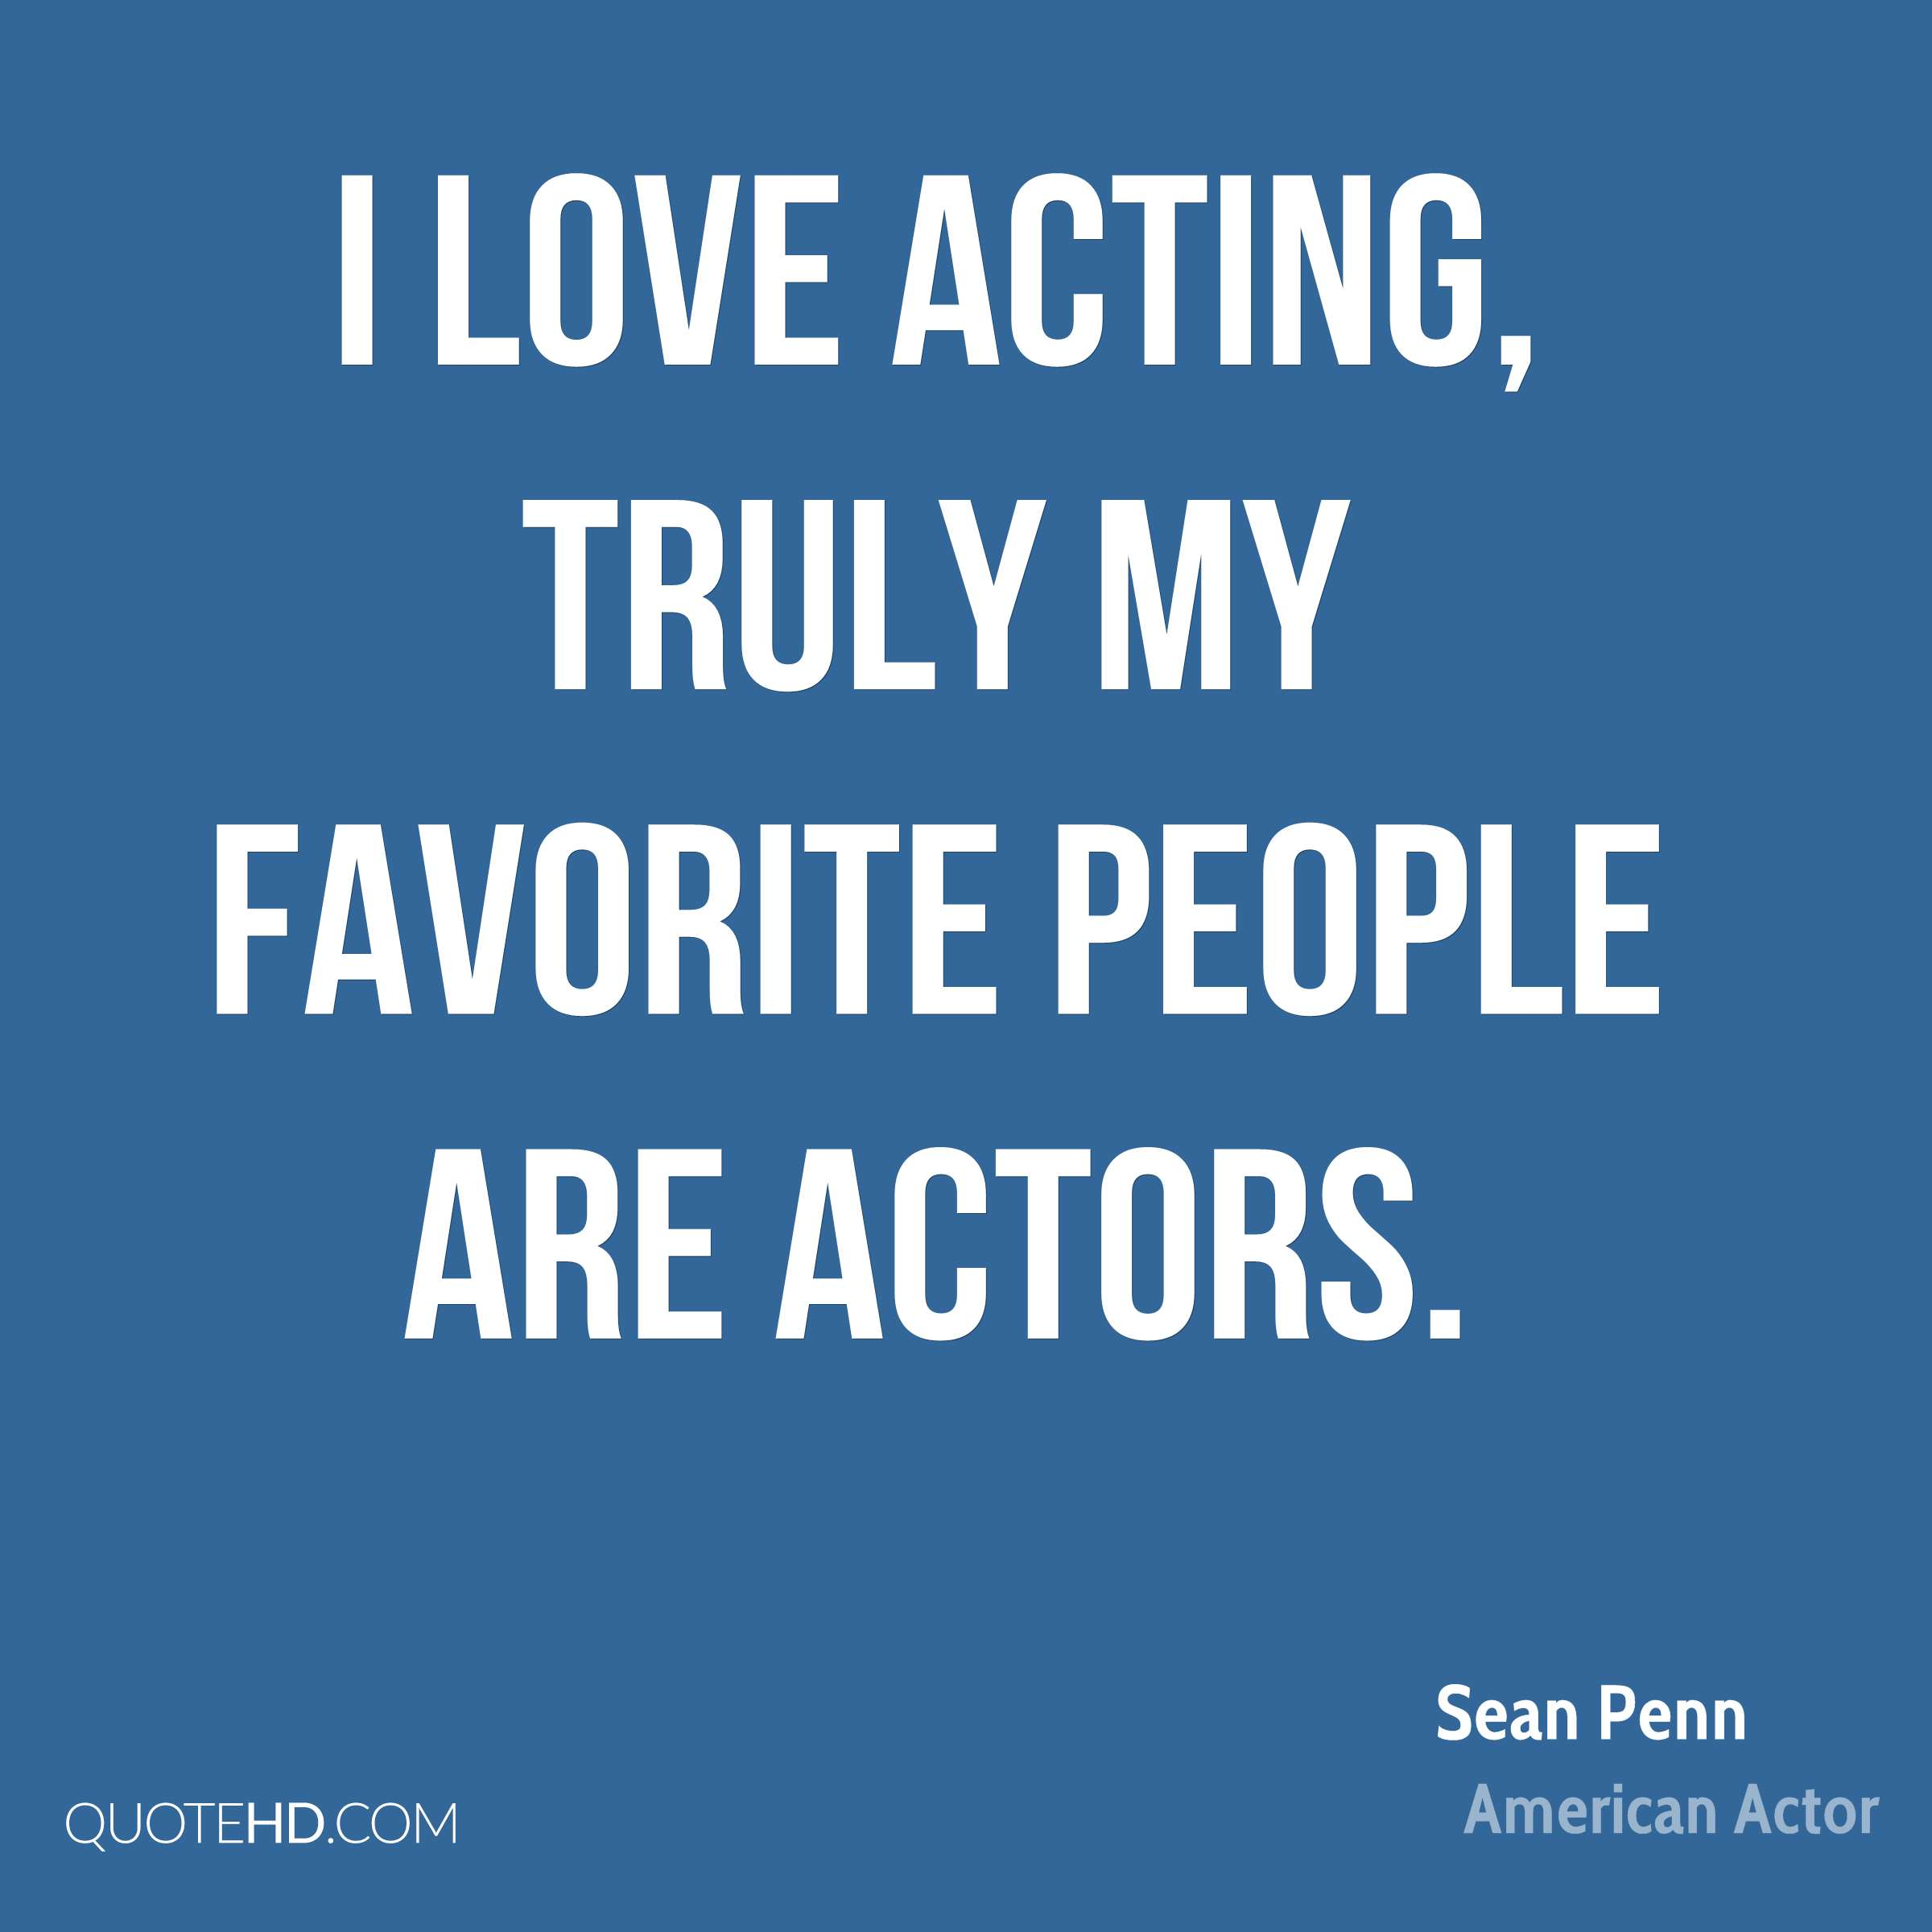 I love acting, truly my favorite people are actors.